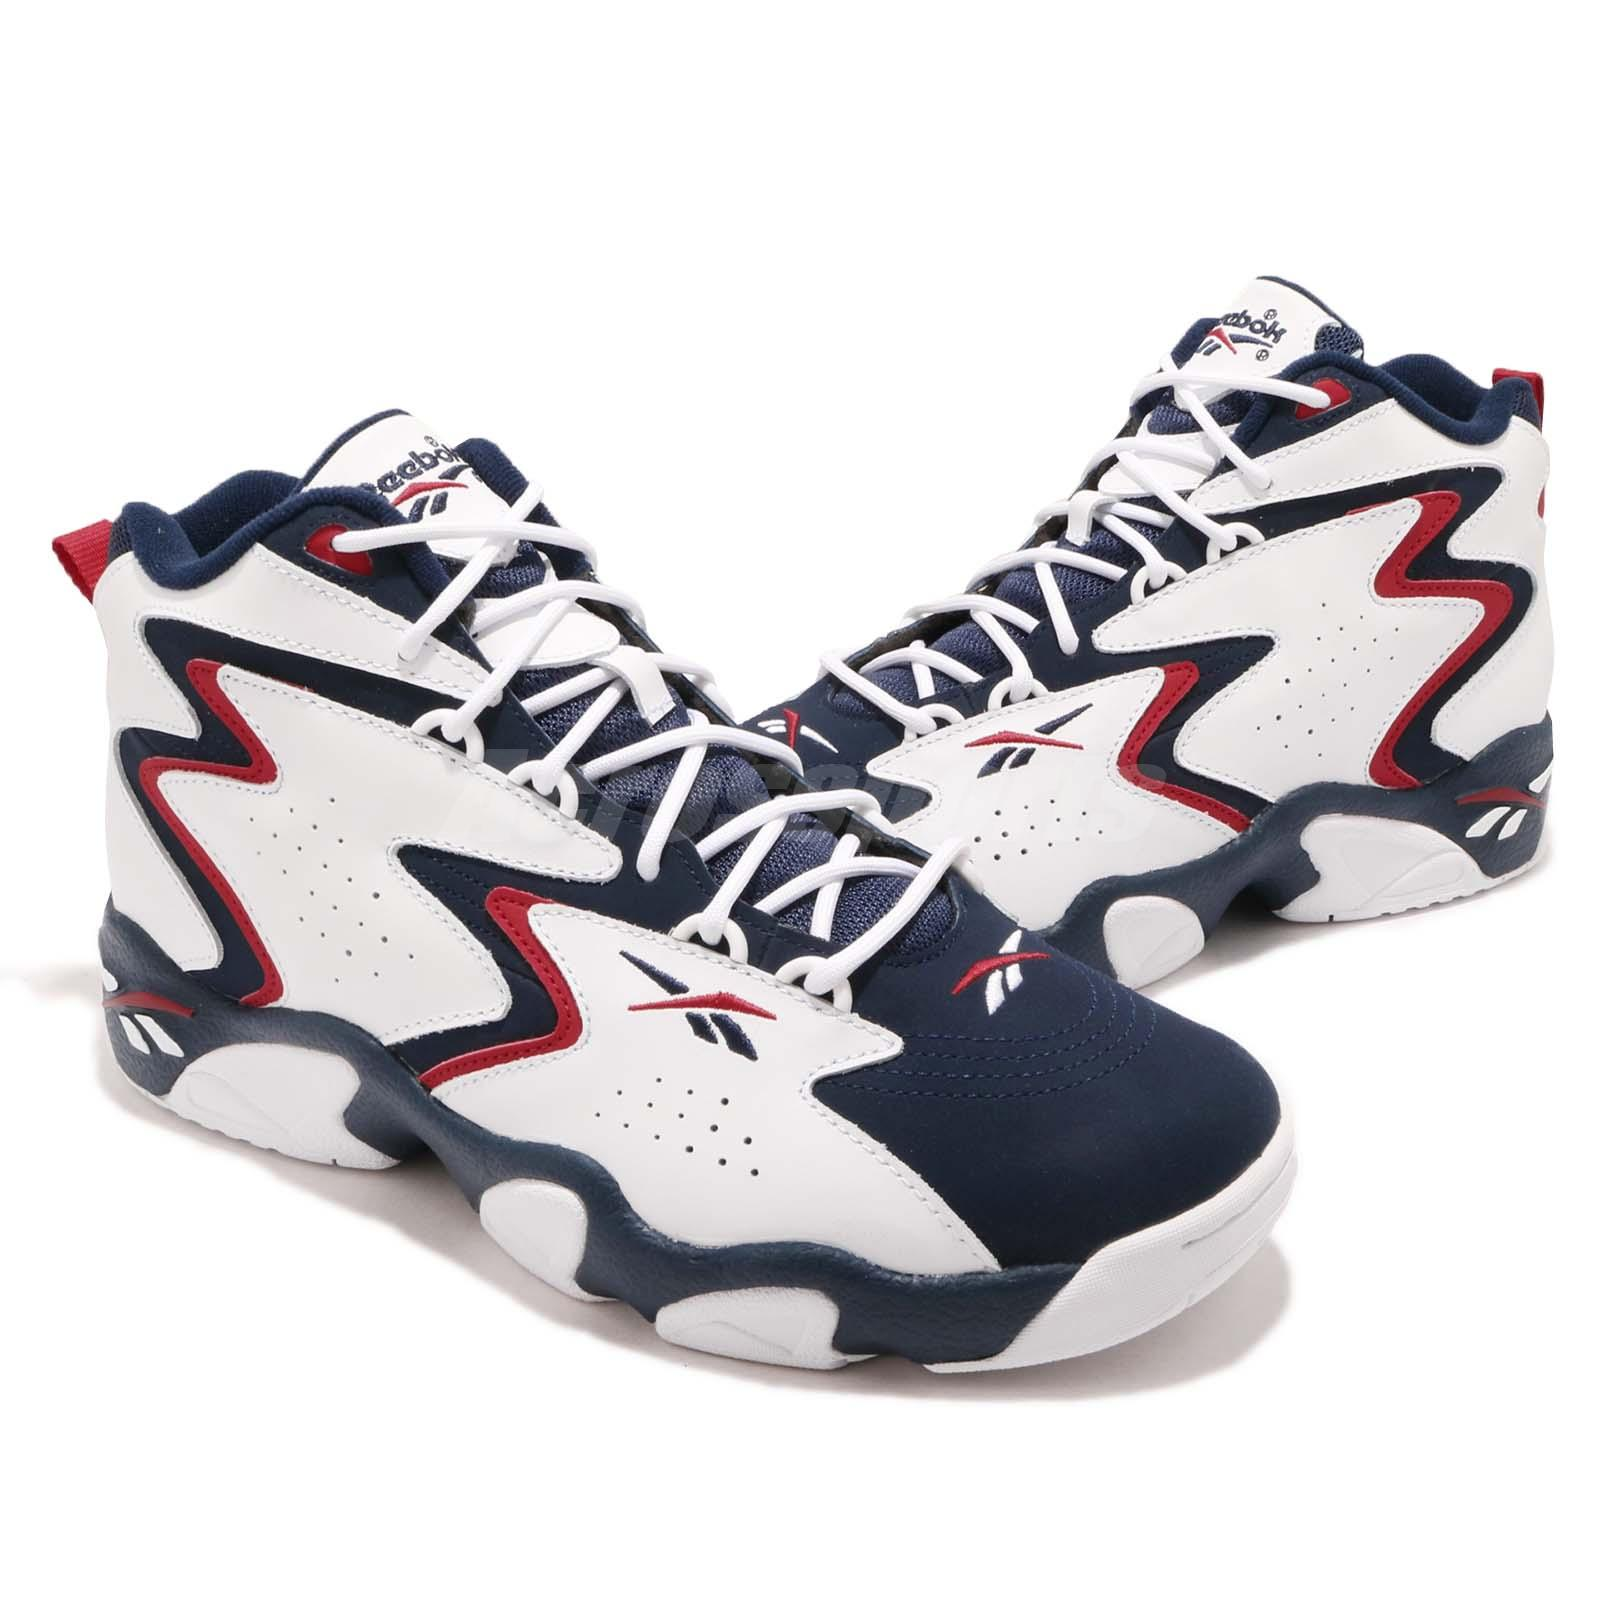 b80fe14aa8 Dettagli su Reebok Mobius OG MU White Navy Red Men Basketball Casual Shoes  Sneakers CN7885